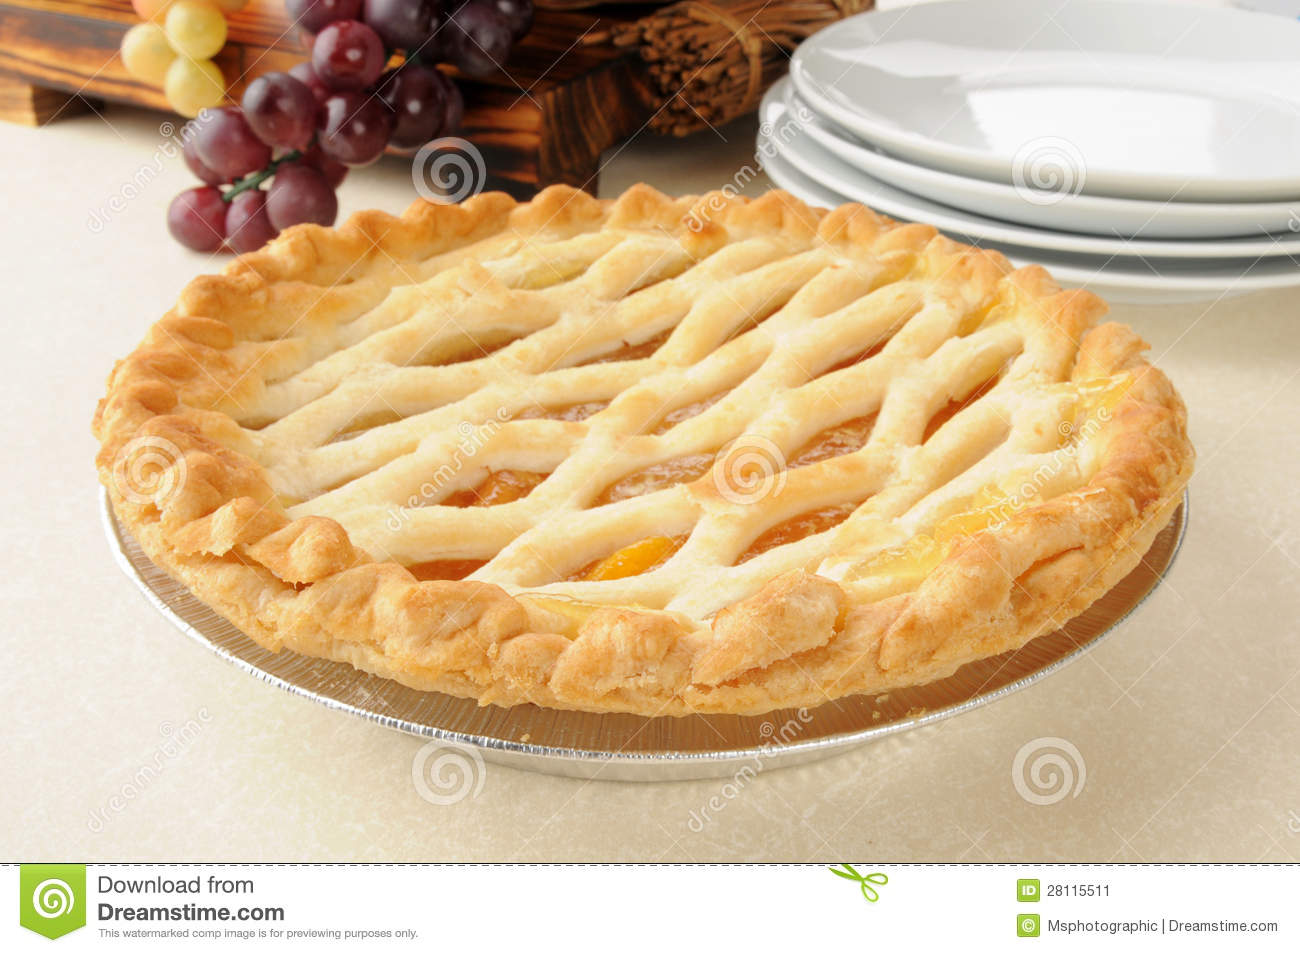 Gourmet Peach Pie Stock Image   Image  28115511